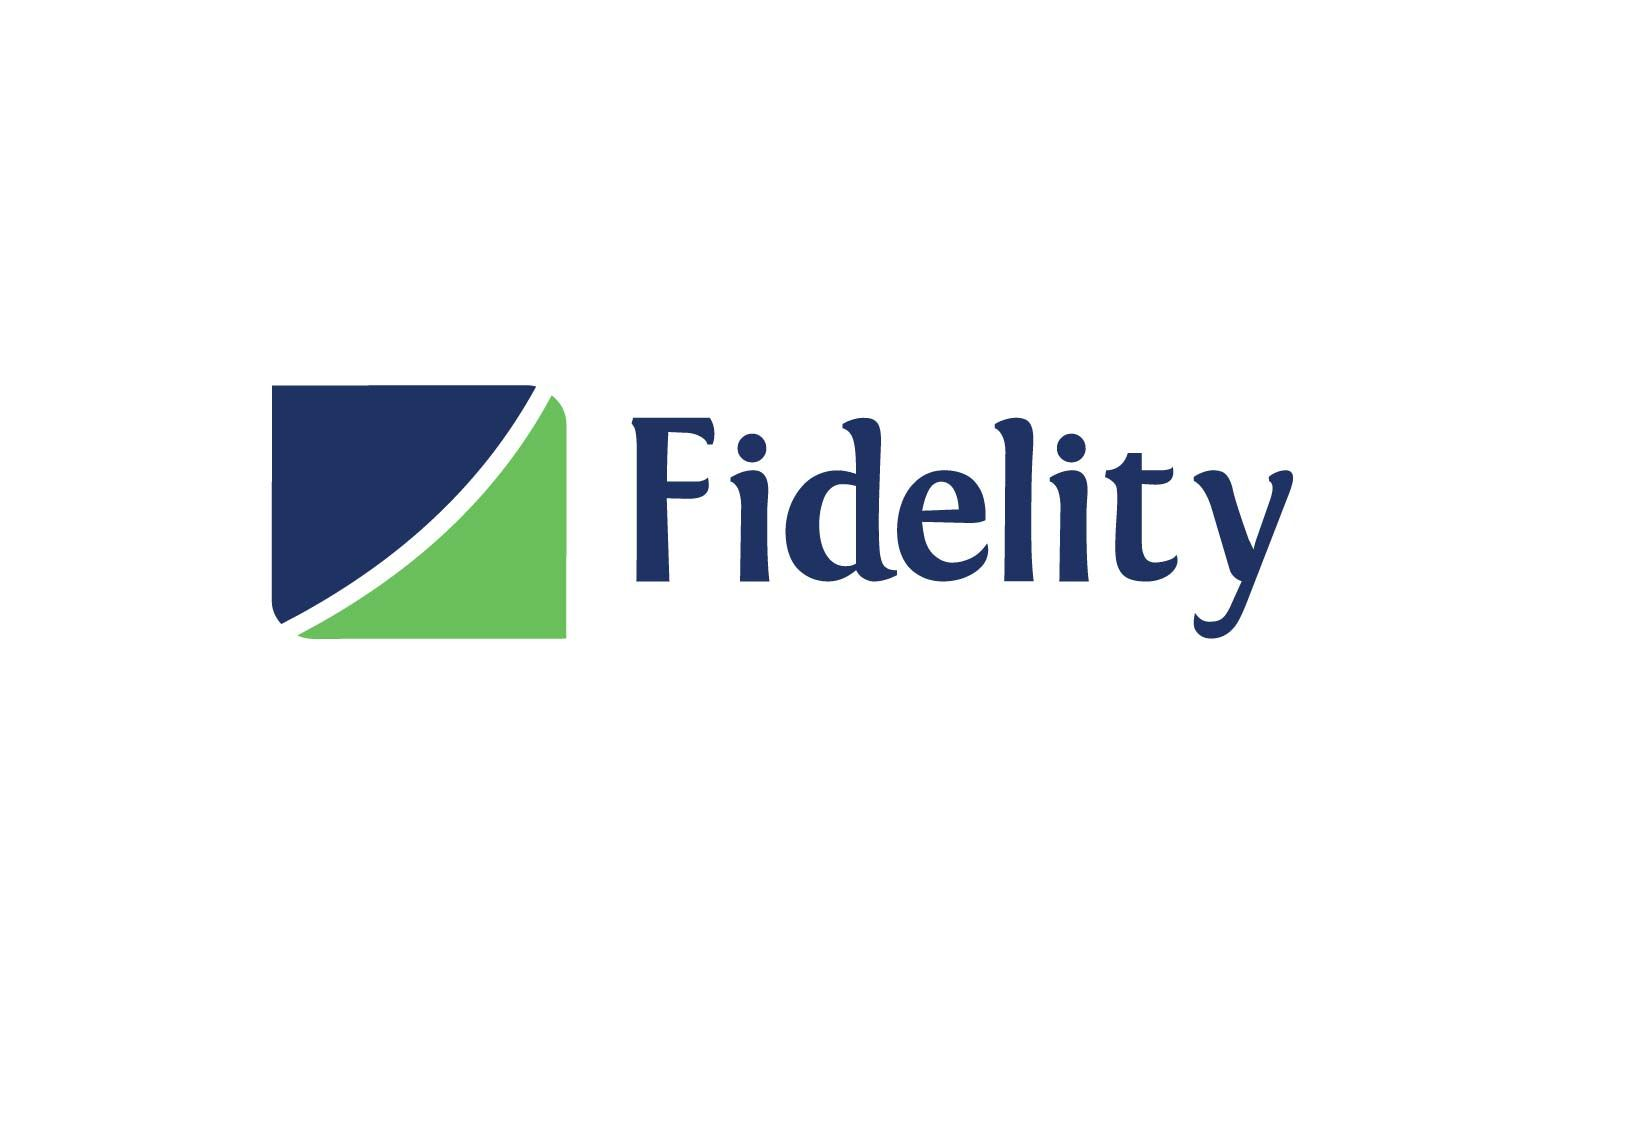 Nigeria S Fidelity Bank Plc Has Partnered With Worldremit A